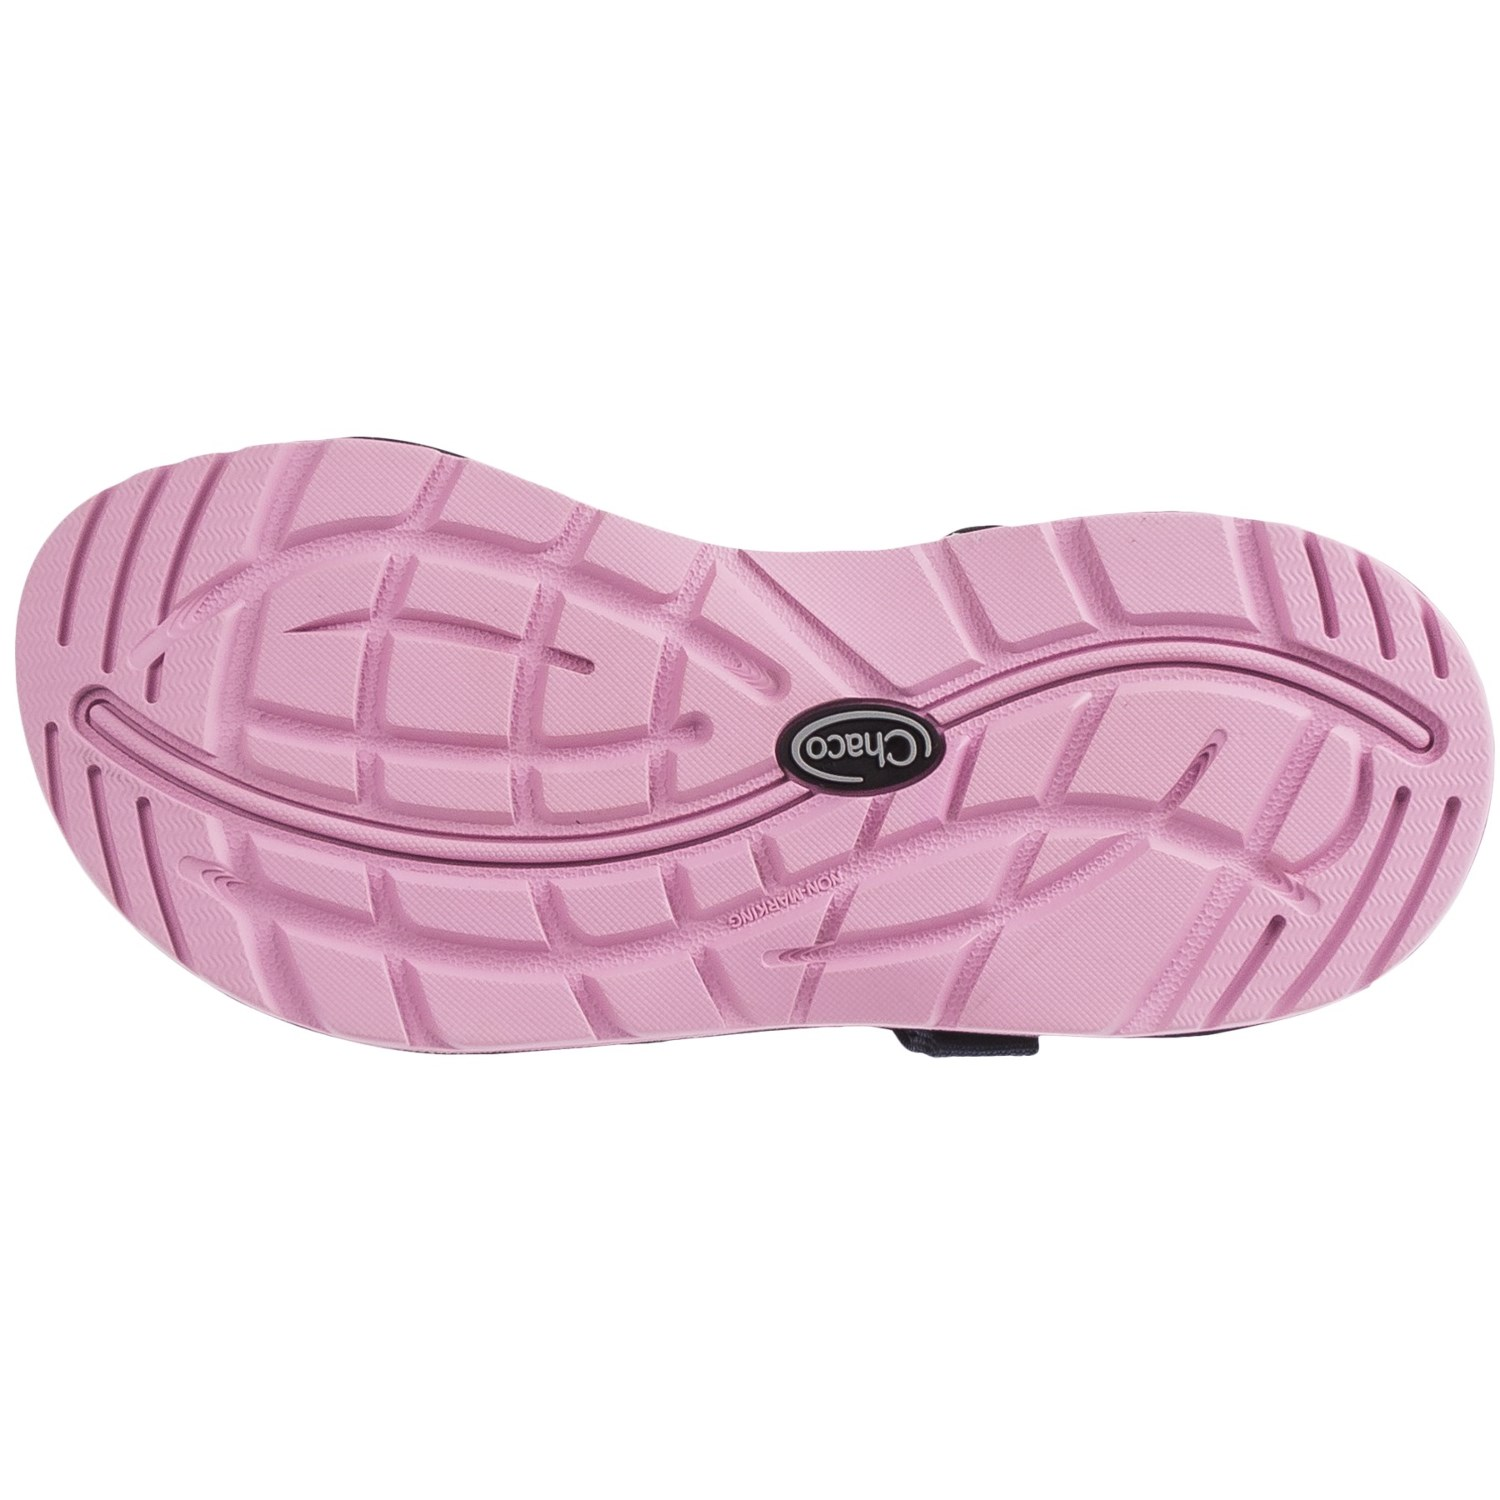 87f7962d7acd Chaco Z 1® Classic Sport Sandals (For Women) - Save 42%